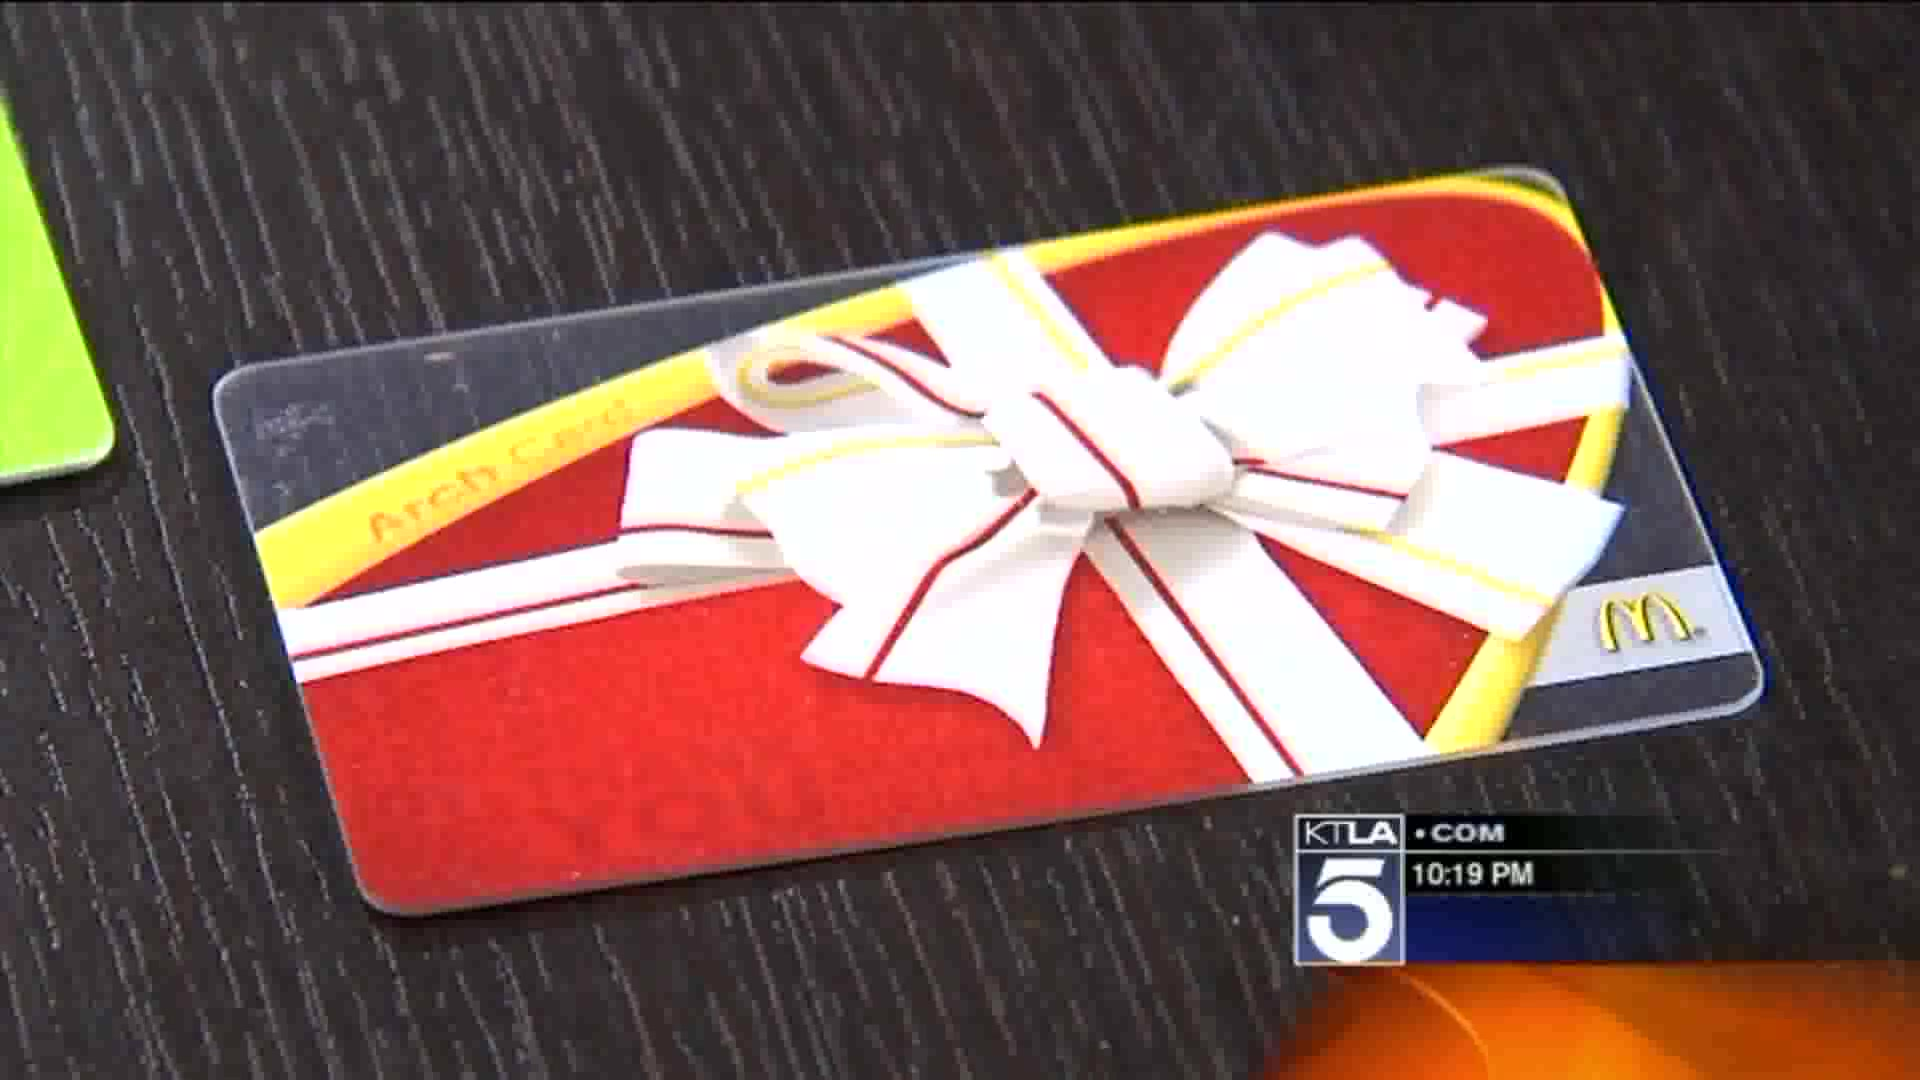 Top 3 Gift Card Scams and How to Spot Them